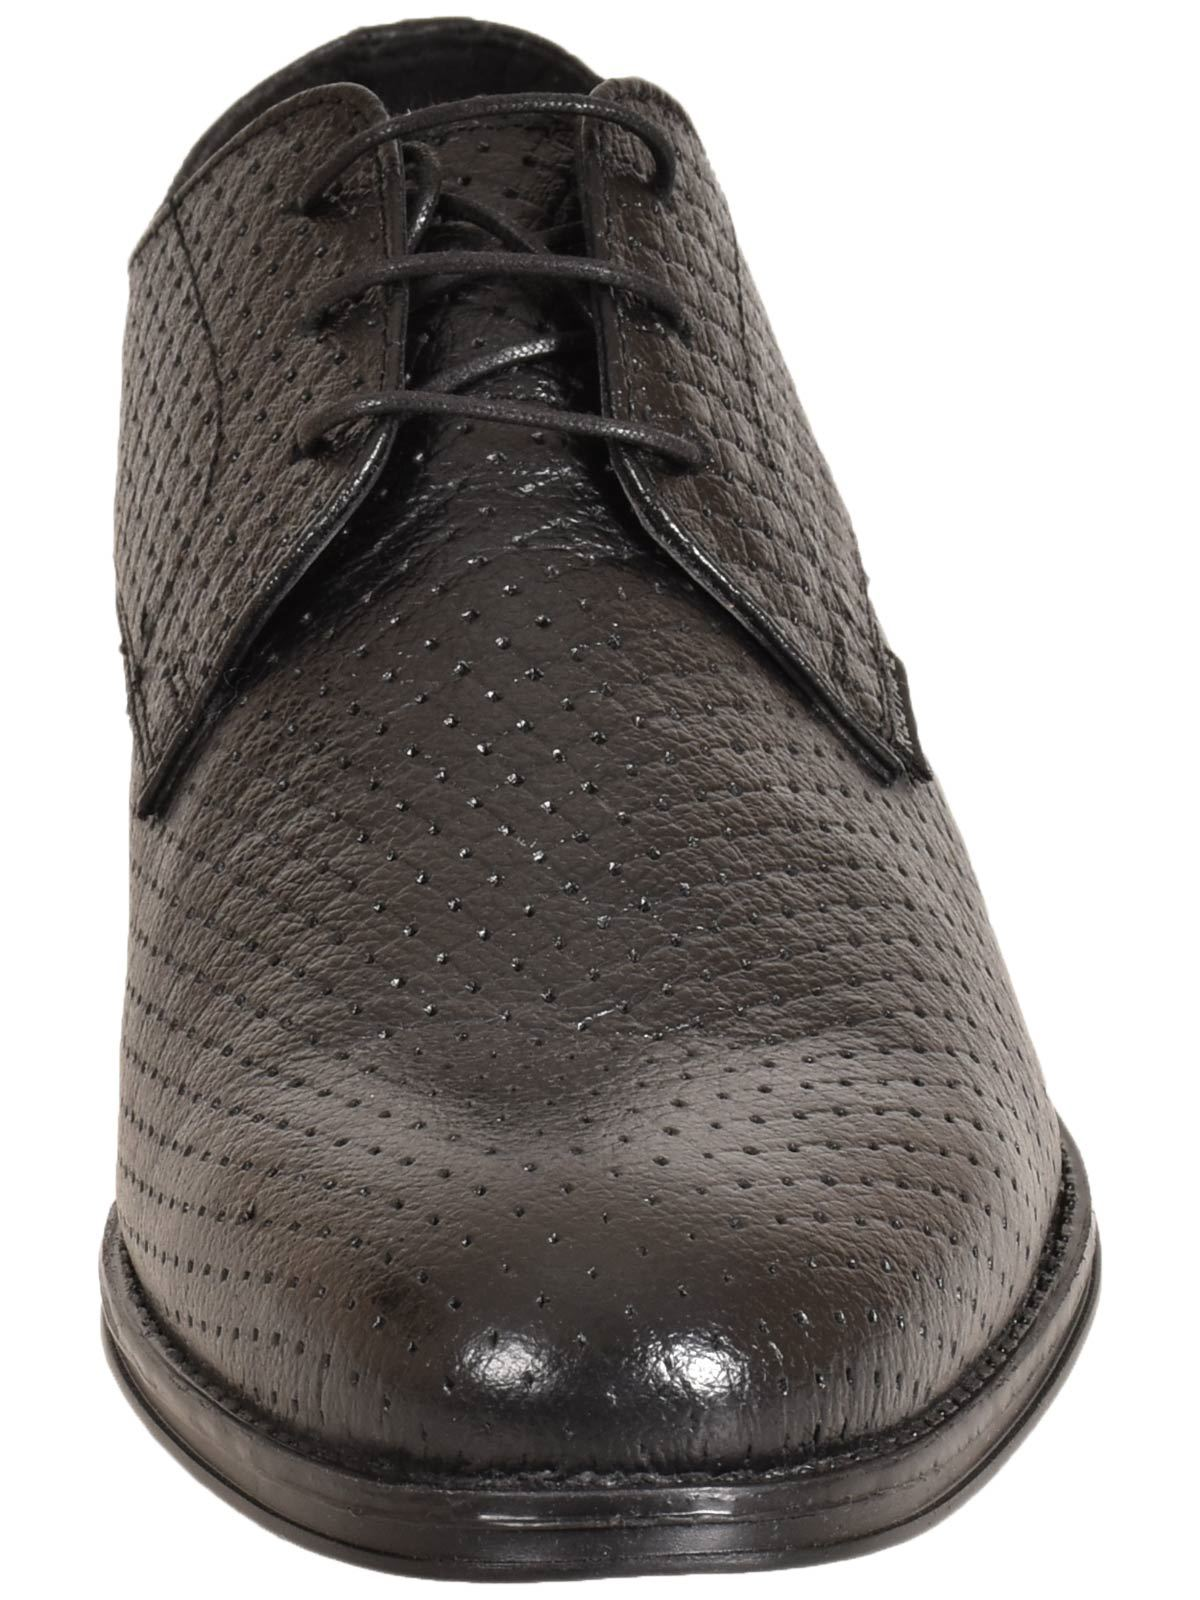 Mens-UK-Style-Leather-Lining-Formal-Office-Wedding-Smart-Work-Brogue-Shoes thumbnail 25